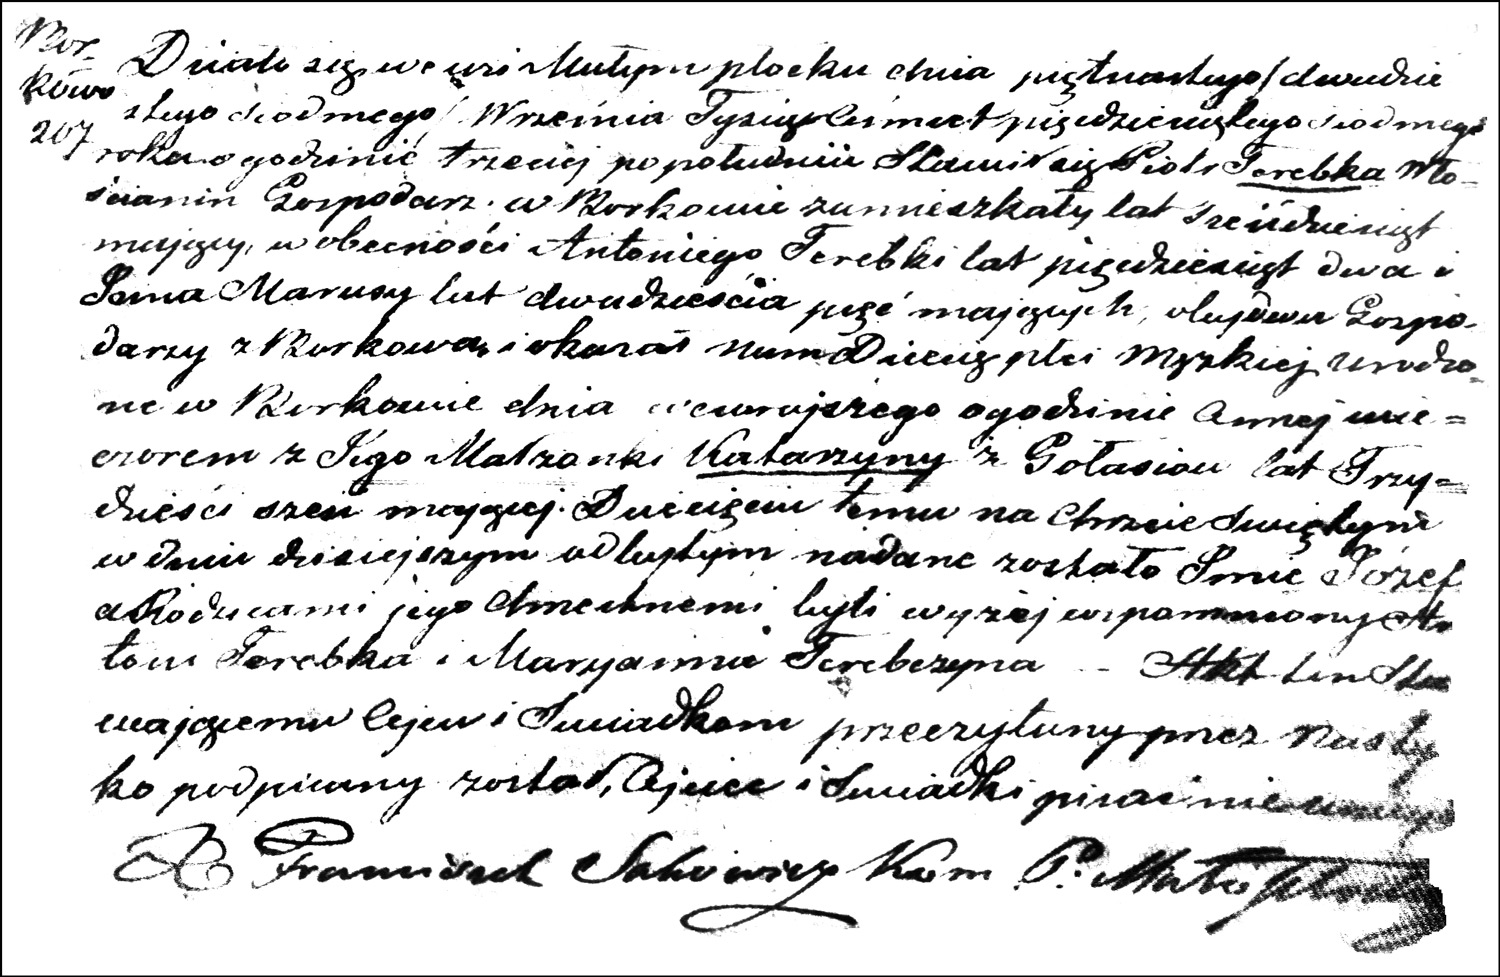 The Birth and Baptismal Record of Józef Terebka – 1857